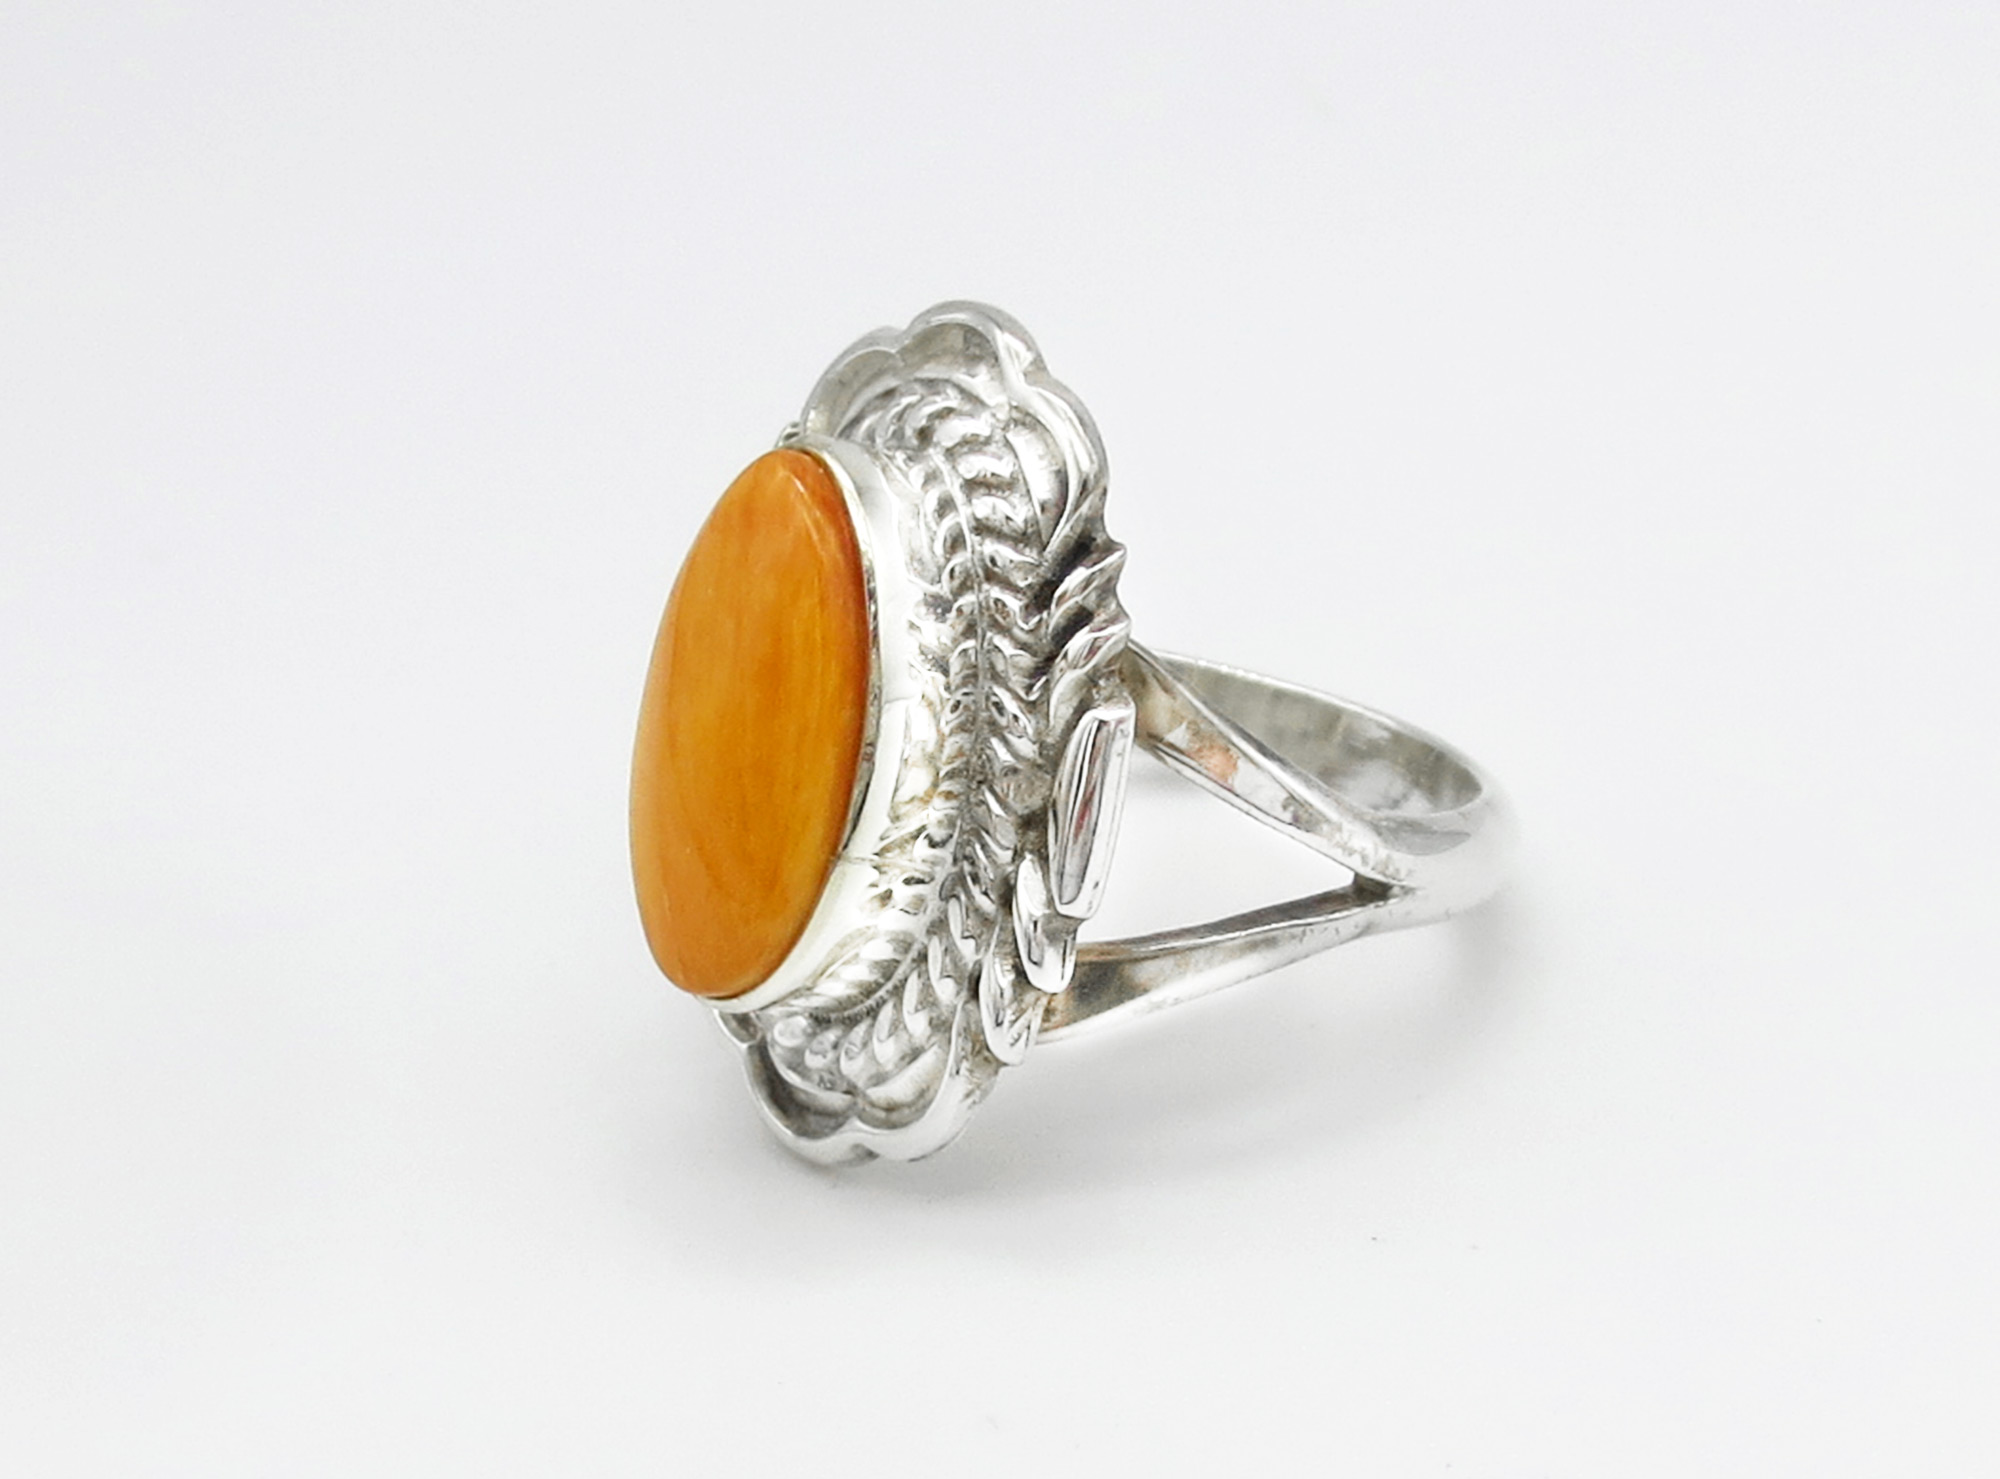 Image 1 of    Orange Spiny Oyster & Sterling Silver Ring Sz 7 Navajo Jewelry - 3946rio